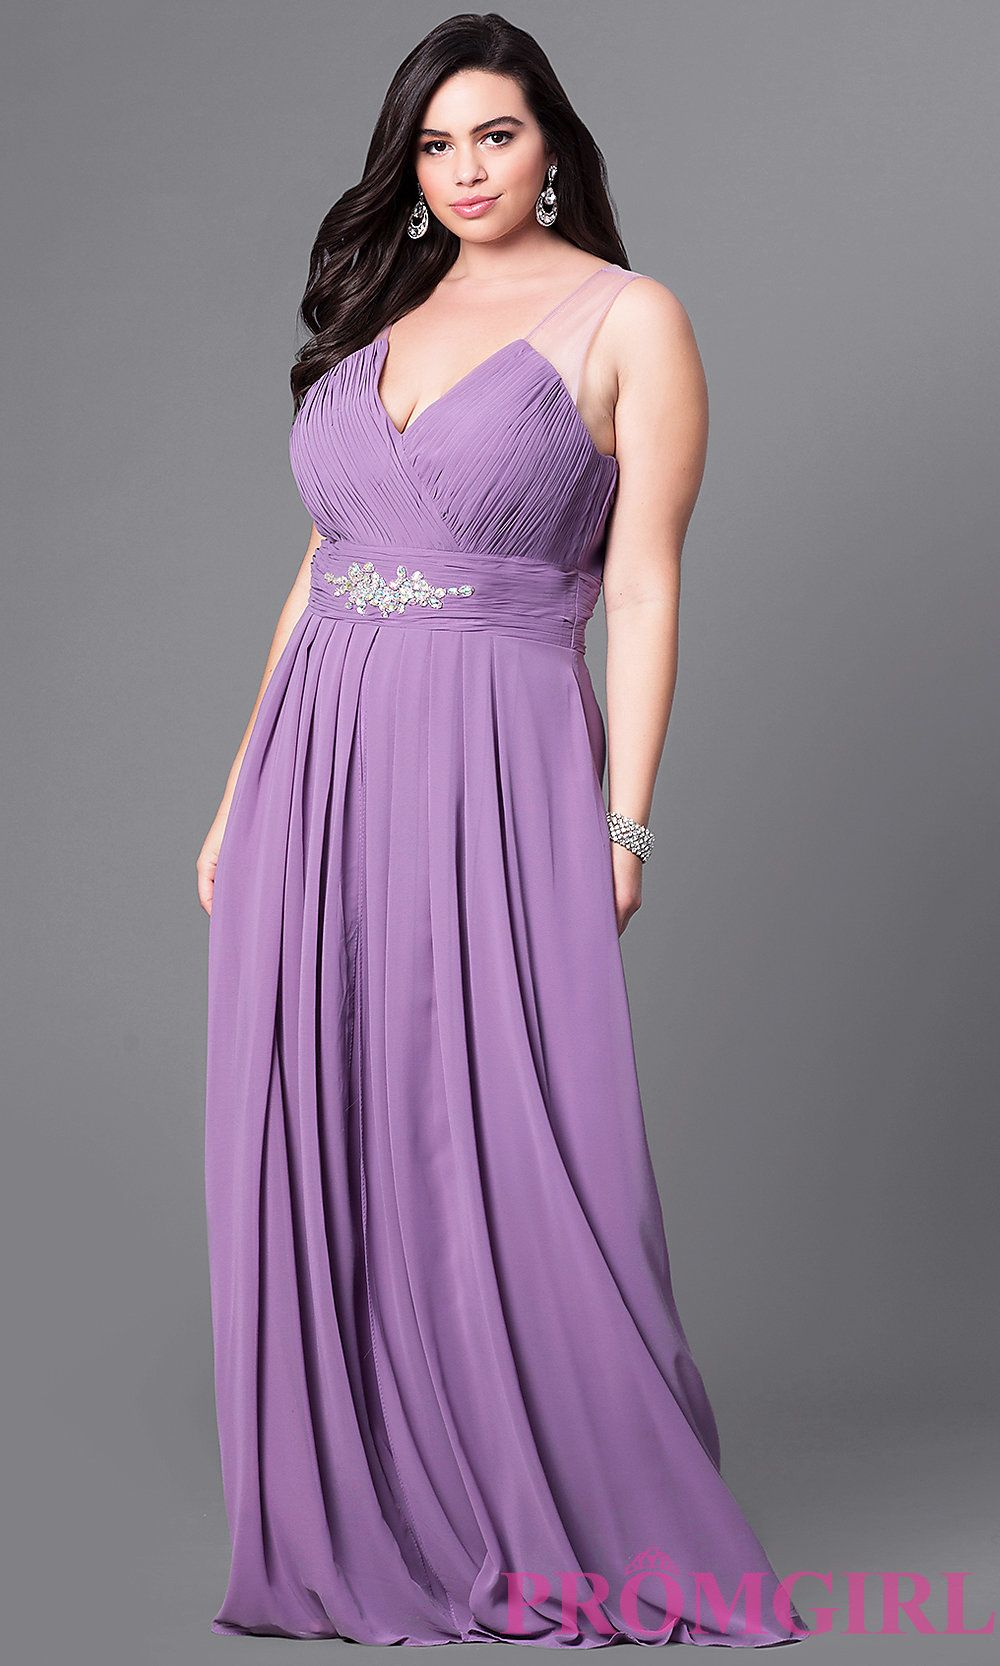 19++ Cheap prom dresses for plus size 2015 trends